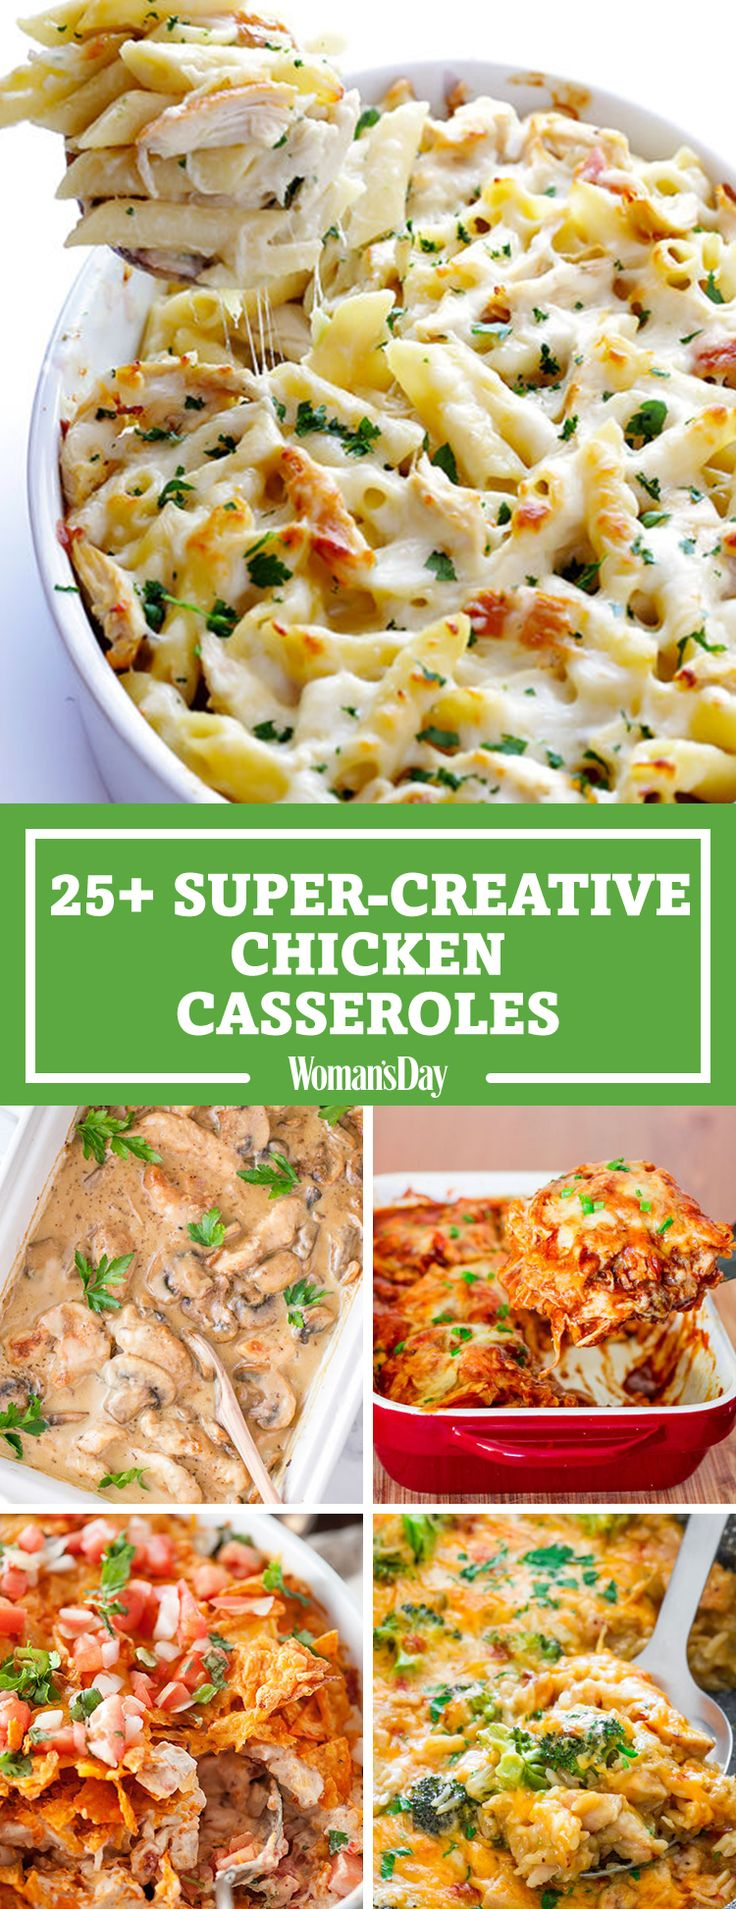 Trust us: You're going to want to make every chicken casserole recipe on this list. These super-creative chicken casserole recipes will make your weeknights feel like a night out. Surprise the family with Chicken Alfredo Baked Ziti, a dish they are bound to love.